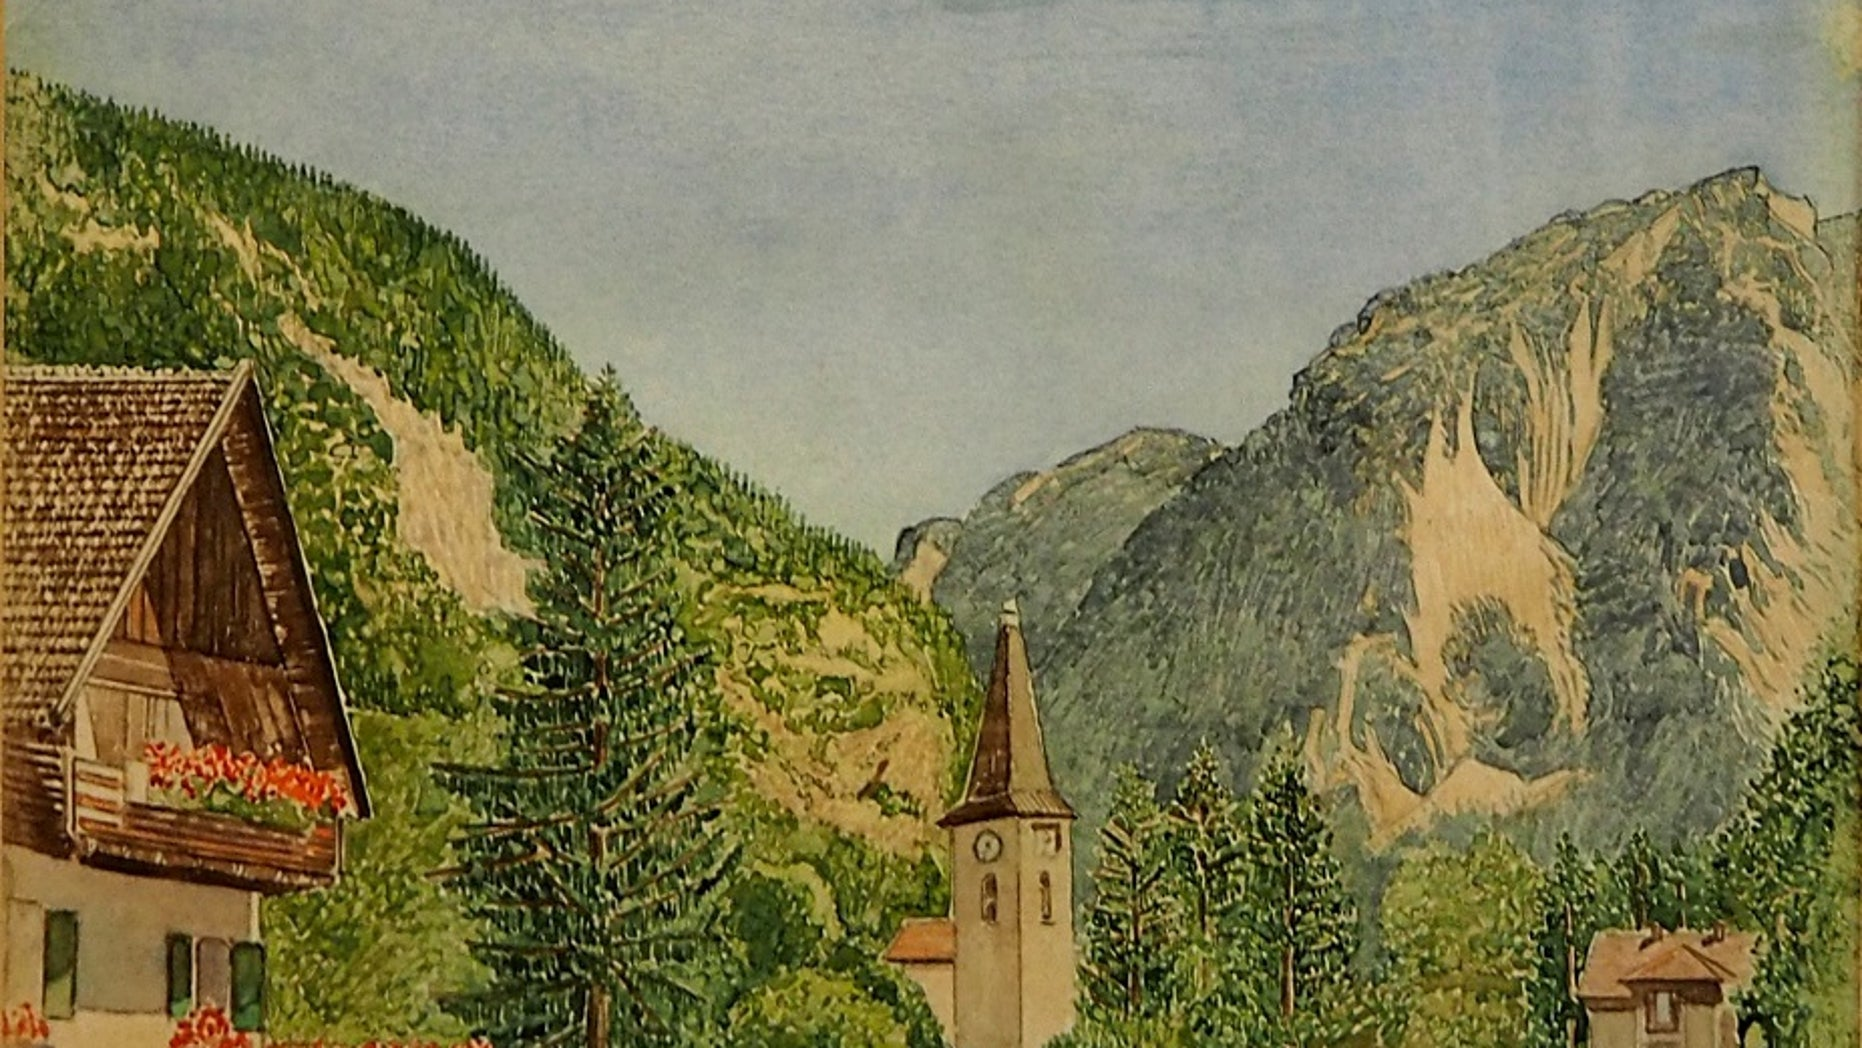 Auktionhaus Weidler in Nuremberg, Germany, is auctioning 31 drawings and watercolor landscapes of rural Germany attributed to Adolf Hitler.